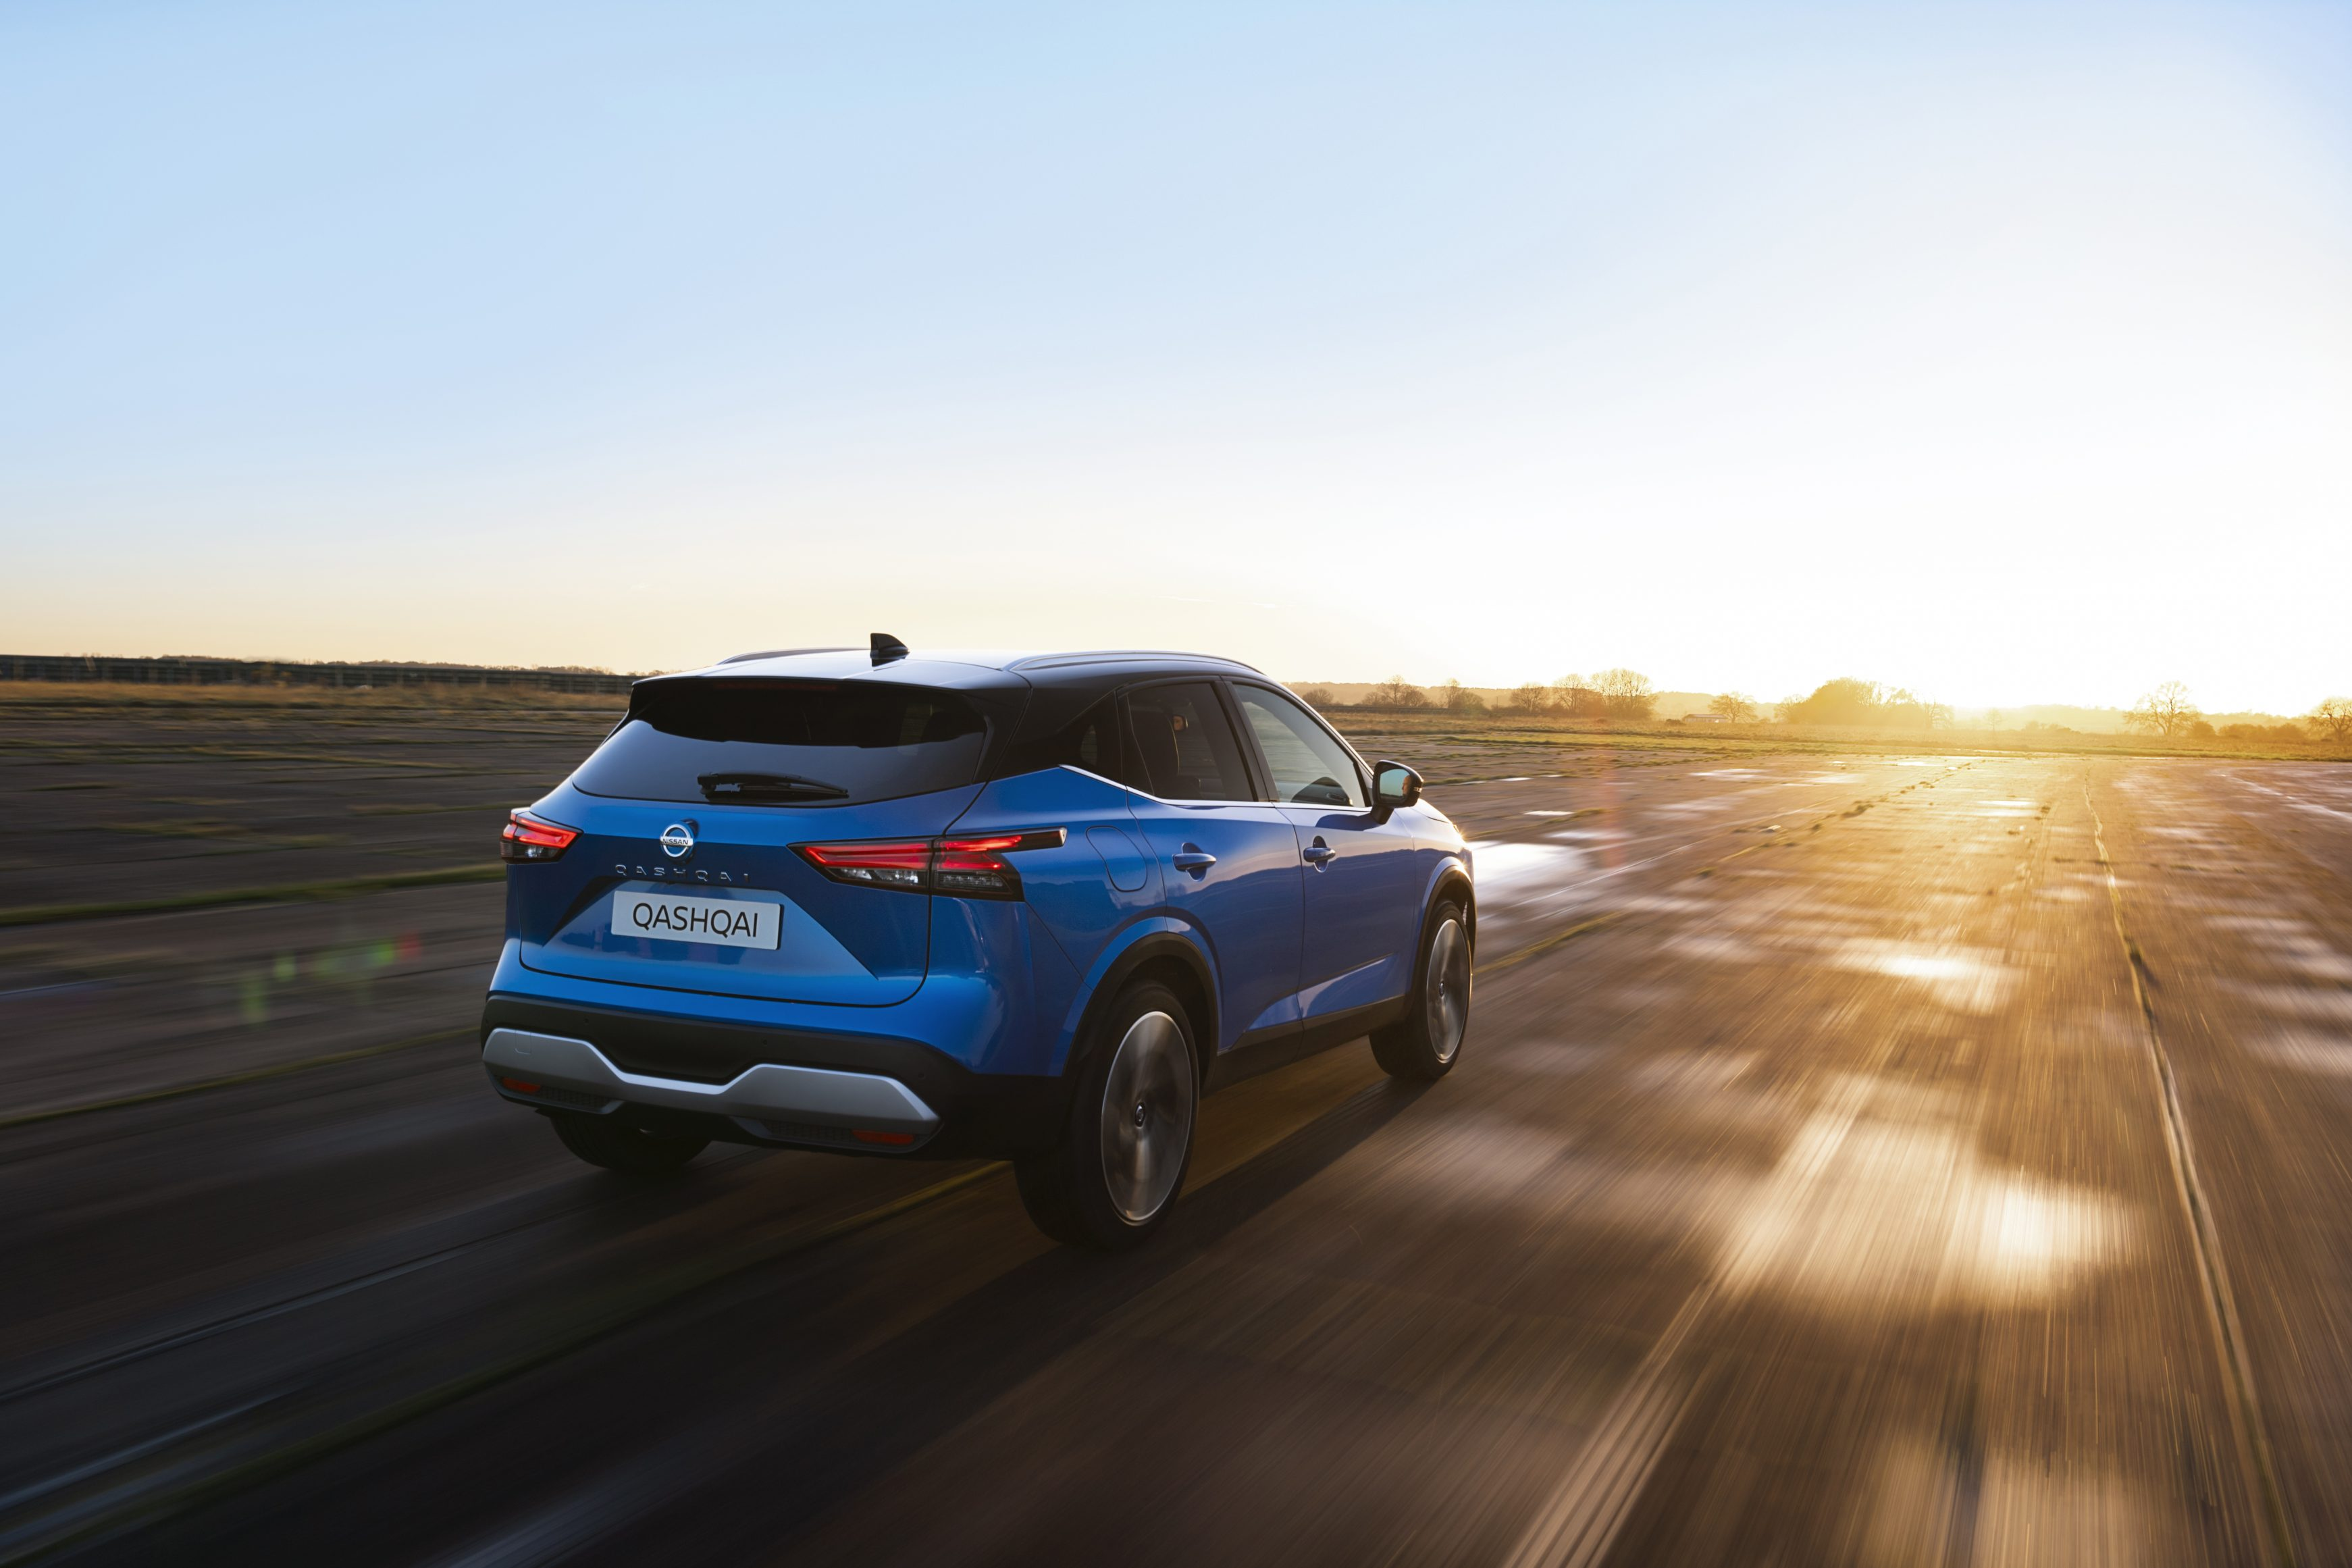 The new Nissan Qashqai comes with a mild hybrid engine that's punchy and fuel-efficient.